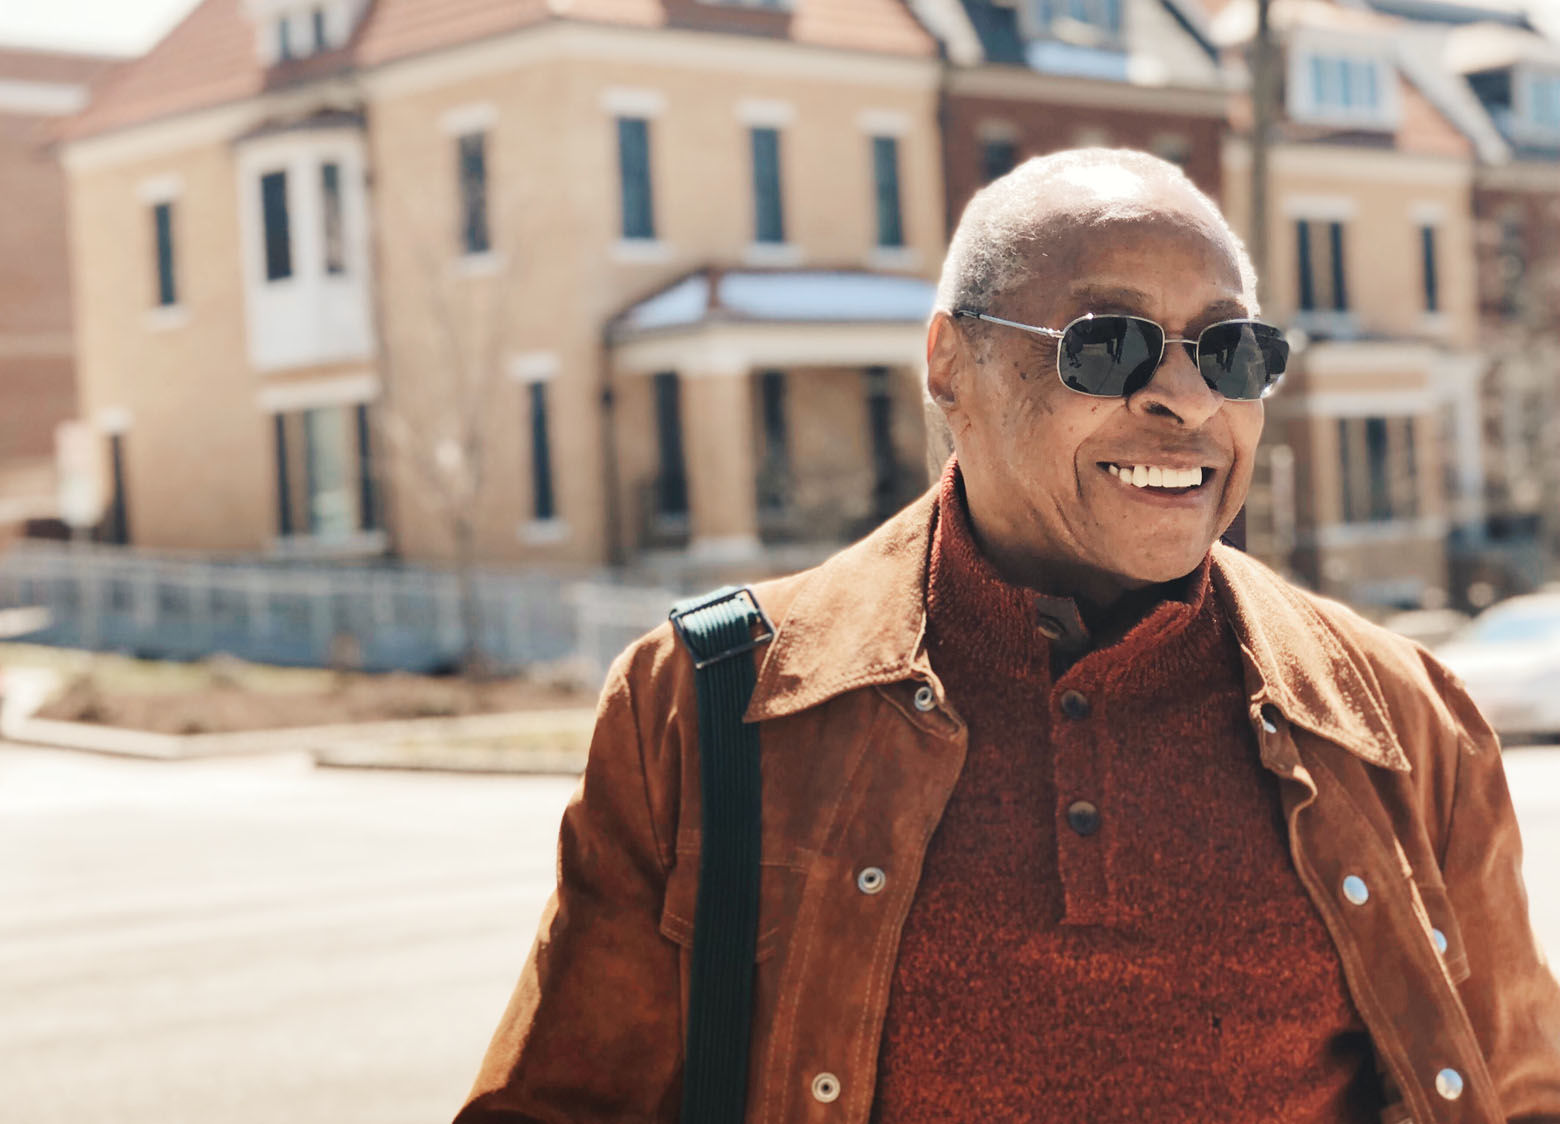 """After his stint at The Star, Paul Delaney's life in Washington took a turn when a new job came calling. He went to work for The New York Times. He worked all over the world and went on to help found the National Association of Black Journalists in 1975. He retired from The Times in the 1990s after nearly 25 years with the paper. """"But here I am: Retired and back in Washington,"""" Delaney said. (WTOP/Omama Altaleb)"""